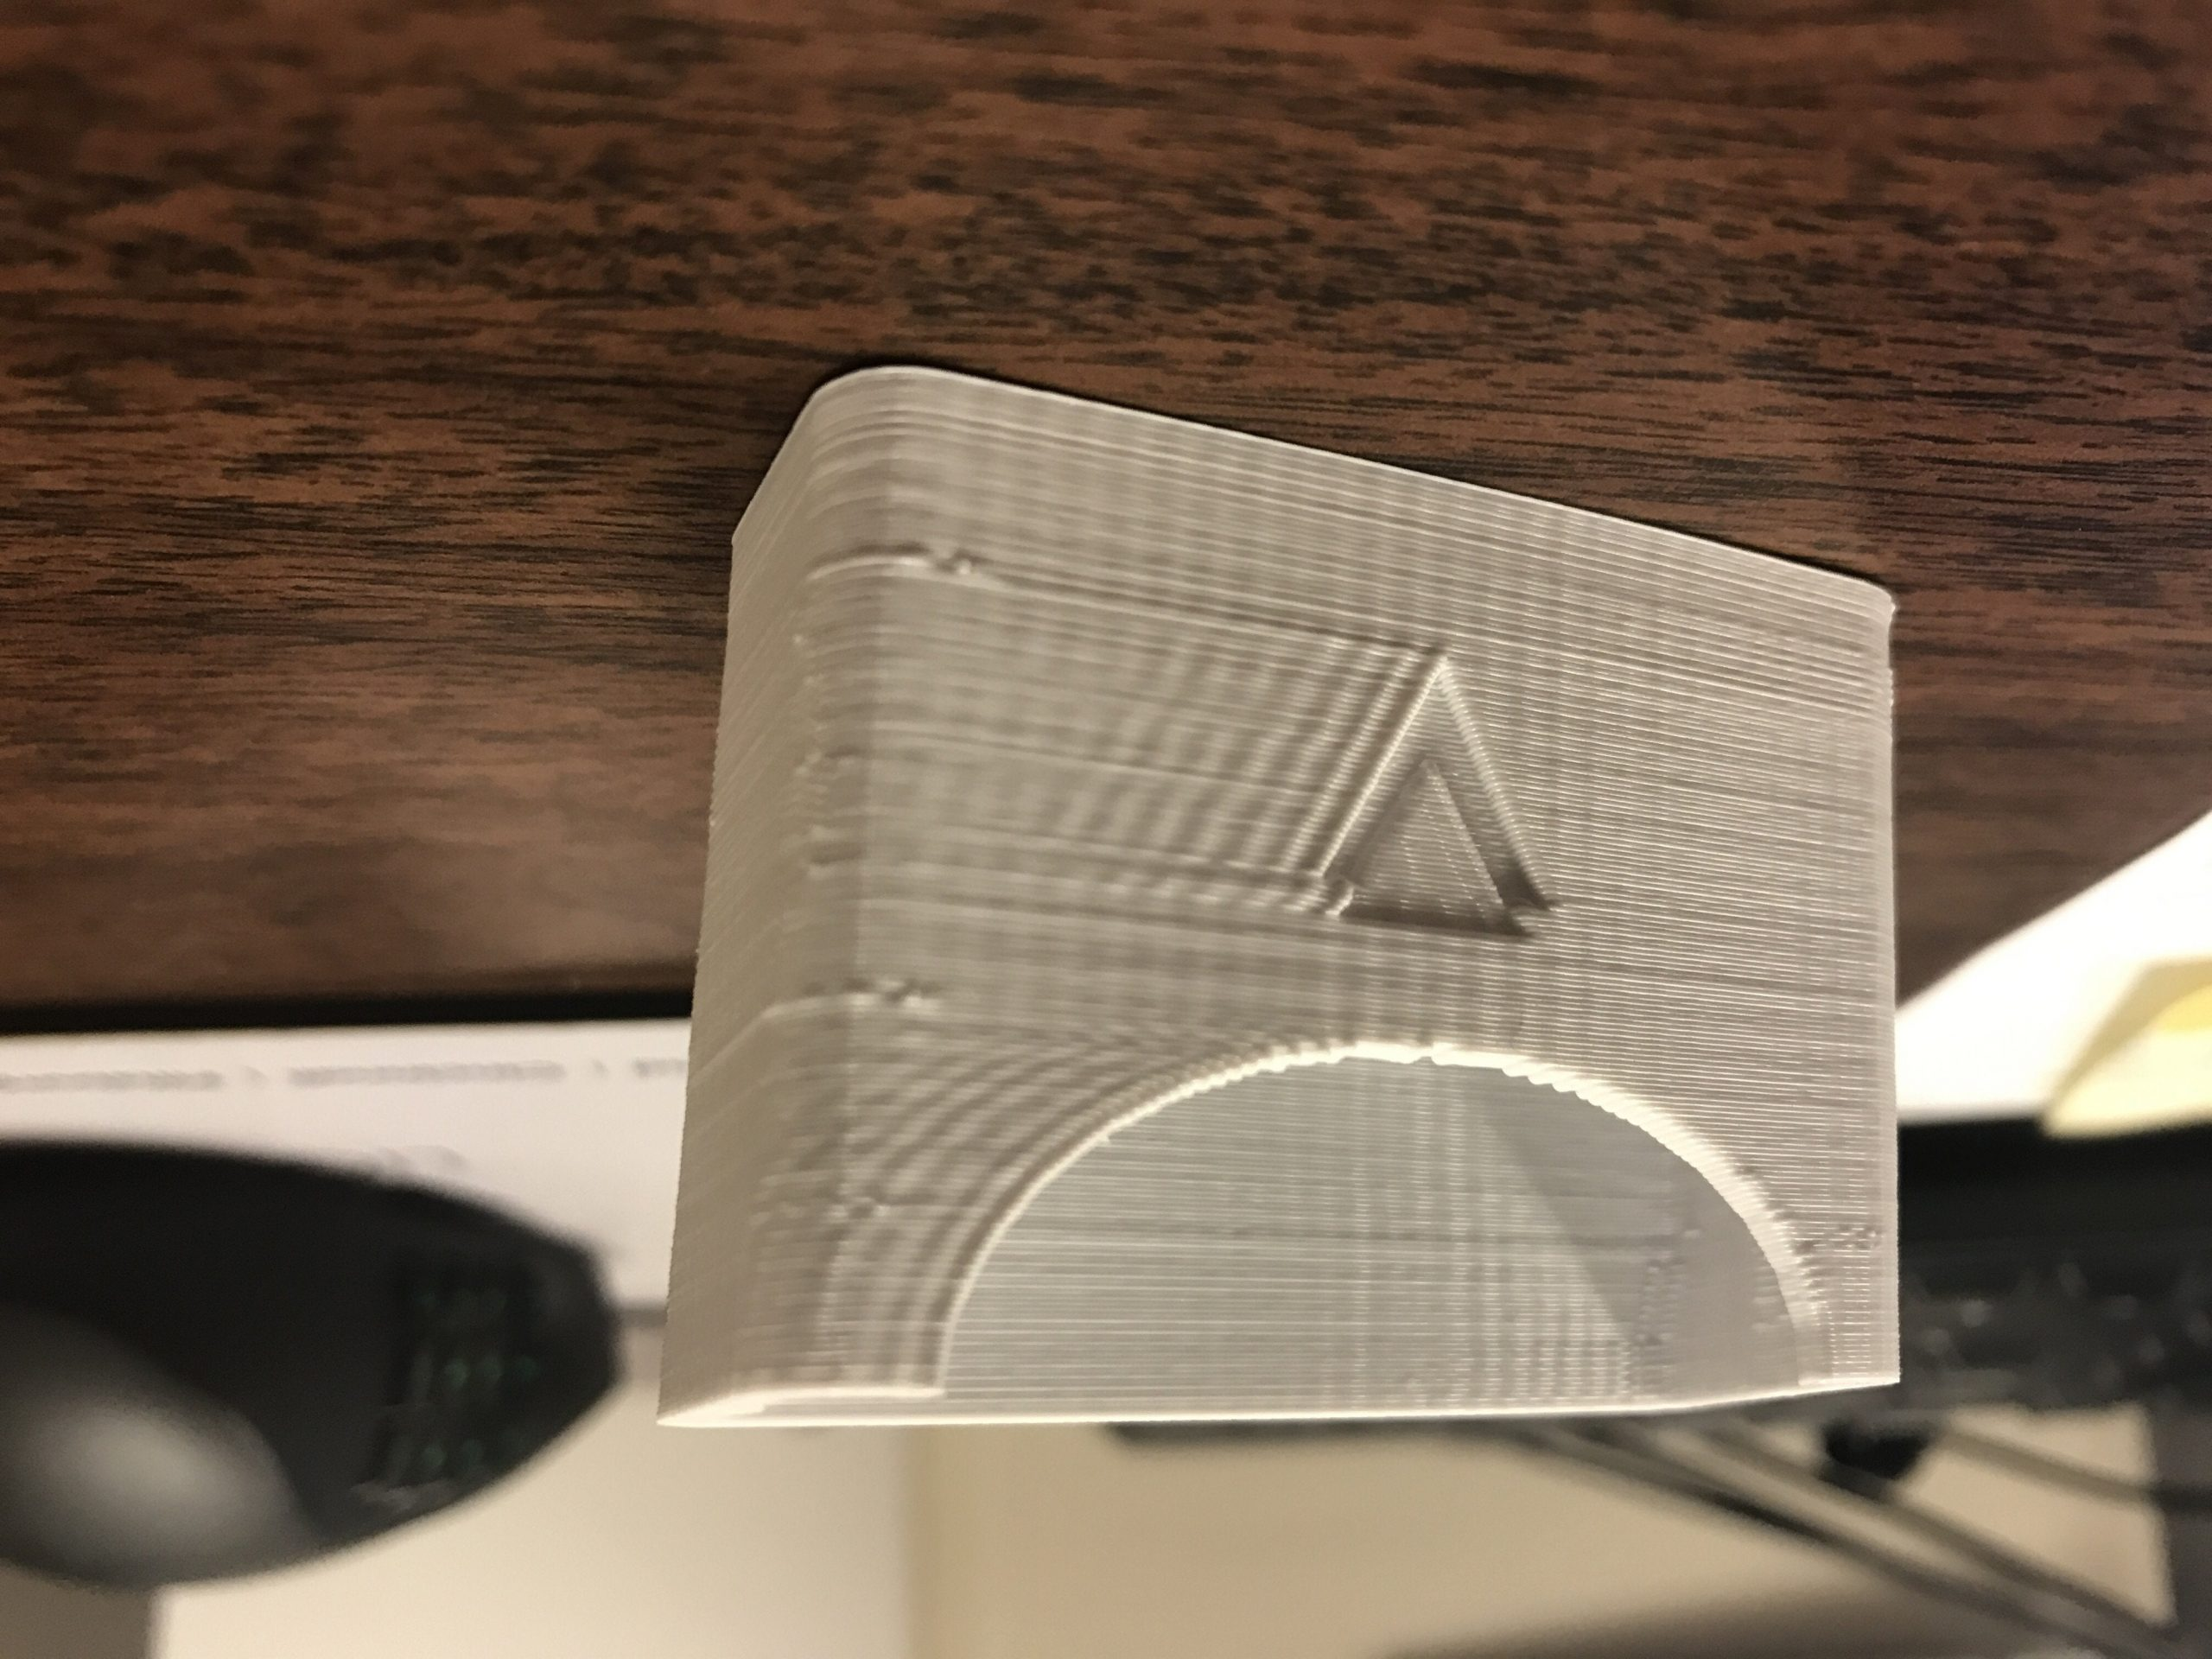 example of 3d print ghosting